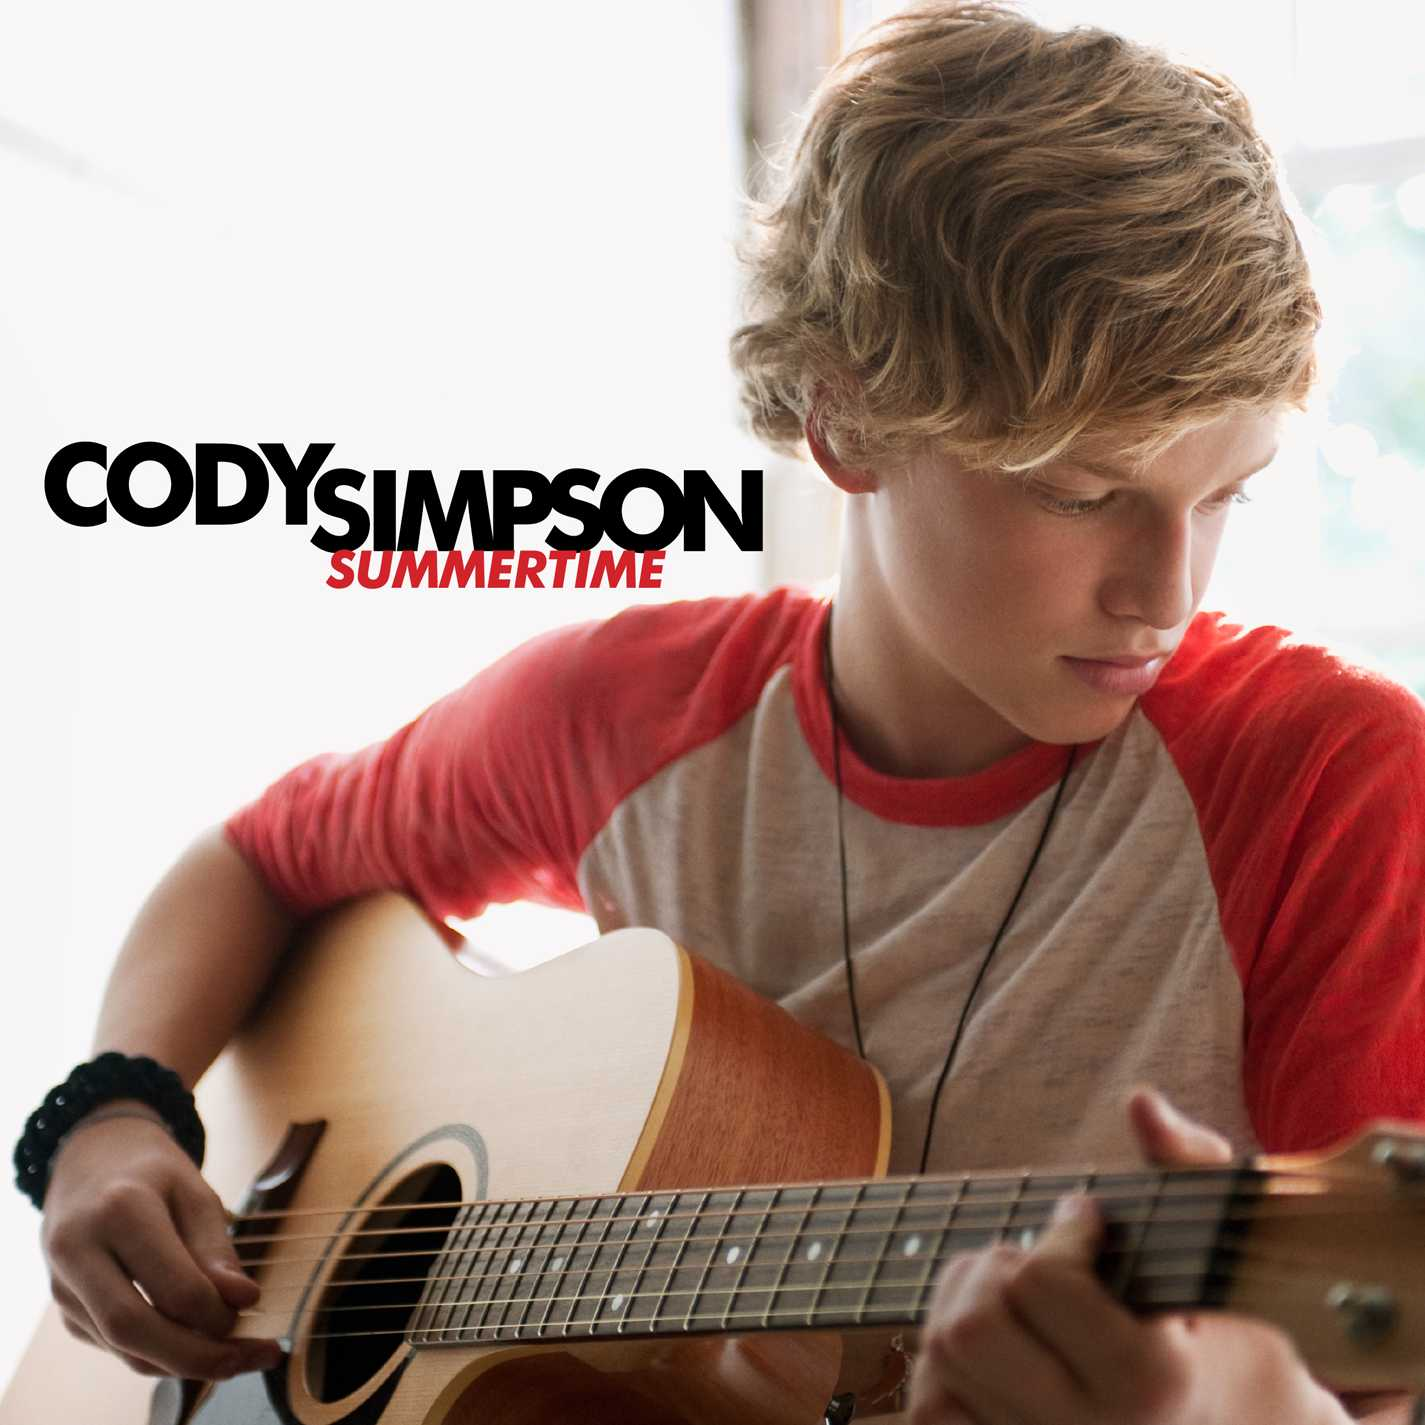 cody single girls Zack and cody martin are 12-year-olds whose lives change when their single mom gets a job as the headlining singer at boston's swankiest hotel and, as part of her contract, an upper floor suite in which they all now live.